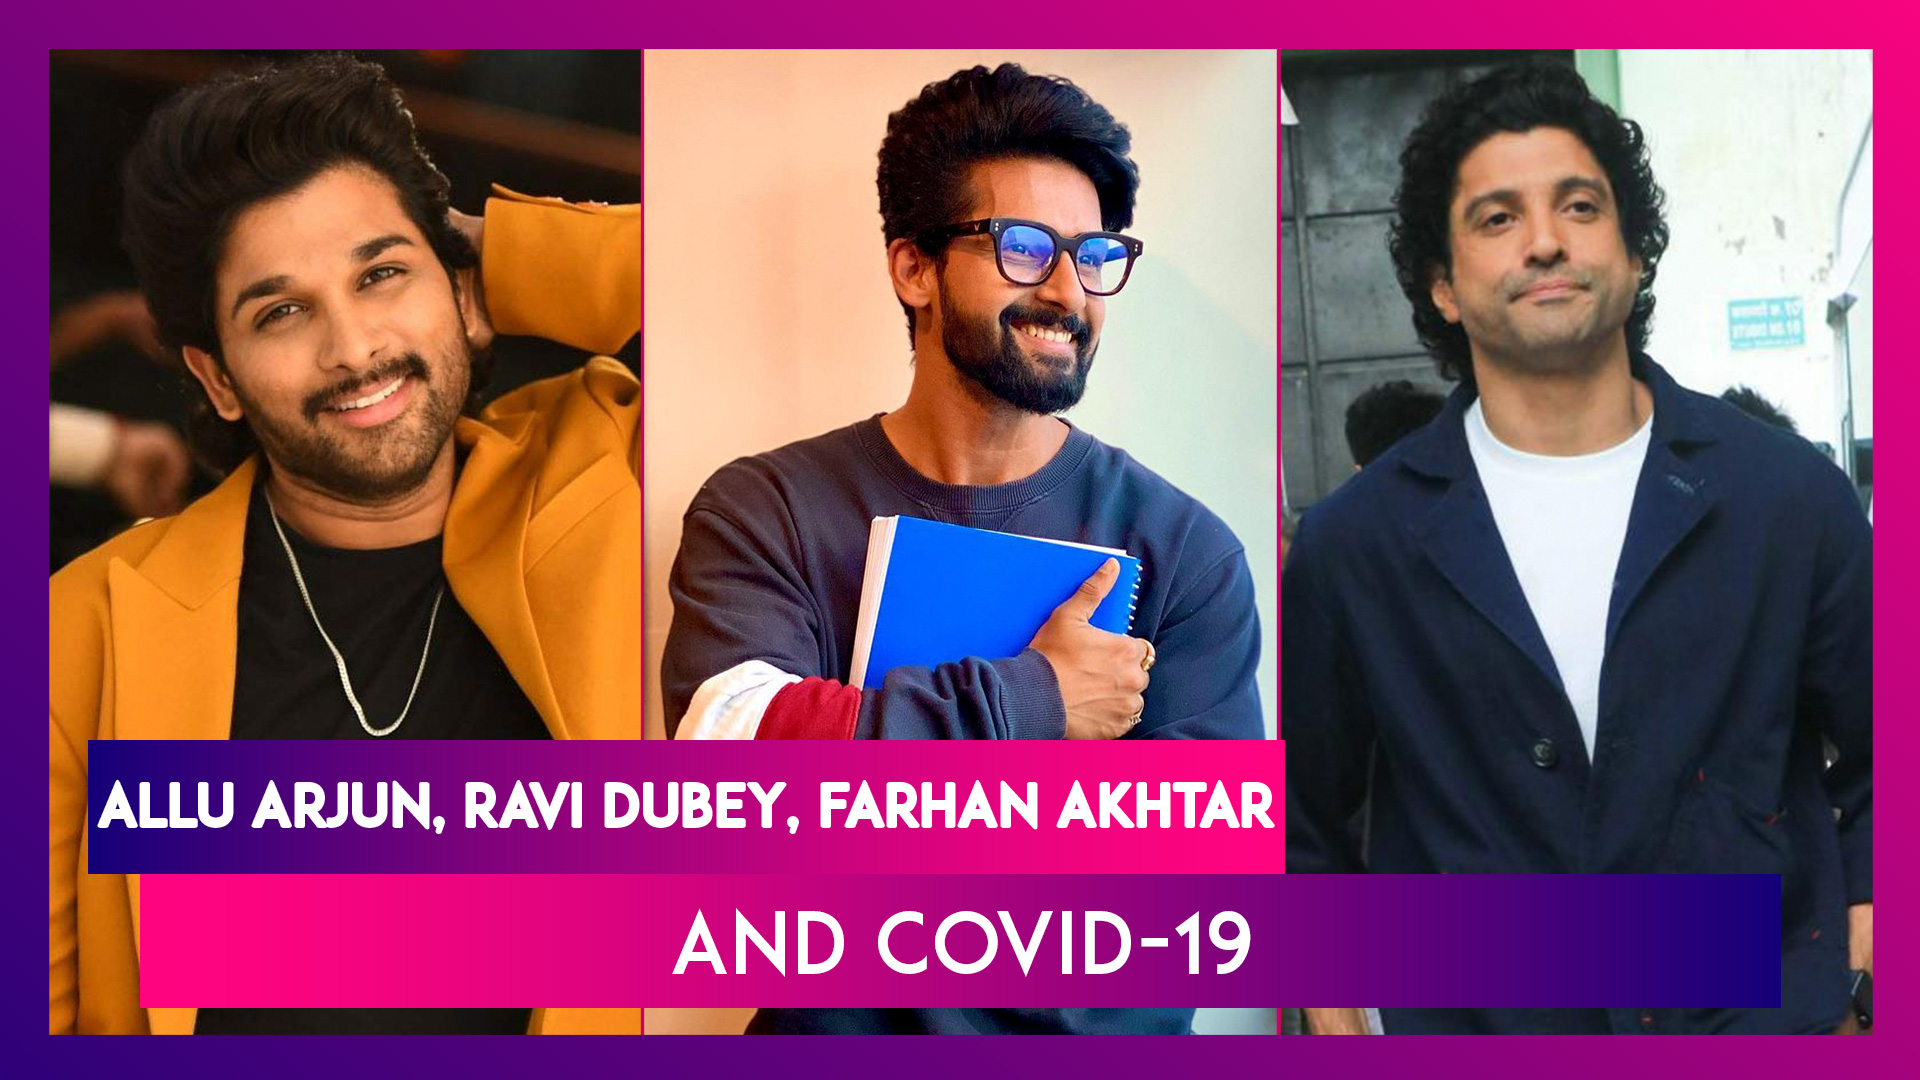 Allu Arjun Tests Negative For Covid-19; Ravi Dubey Contracts The Virus & Farhan Akhtar's Reply To Troll Who Called Him 'VIP Brat'